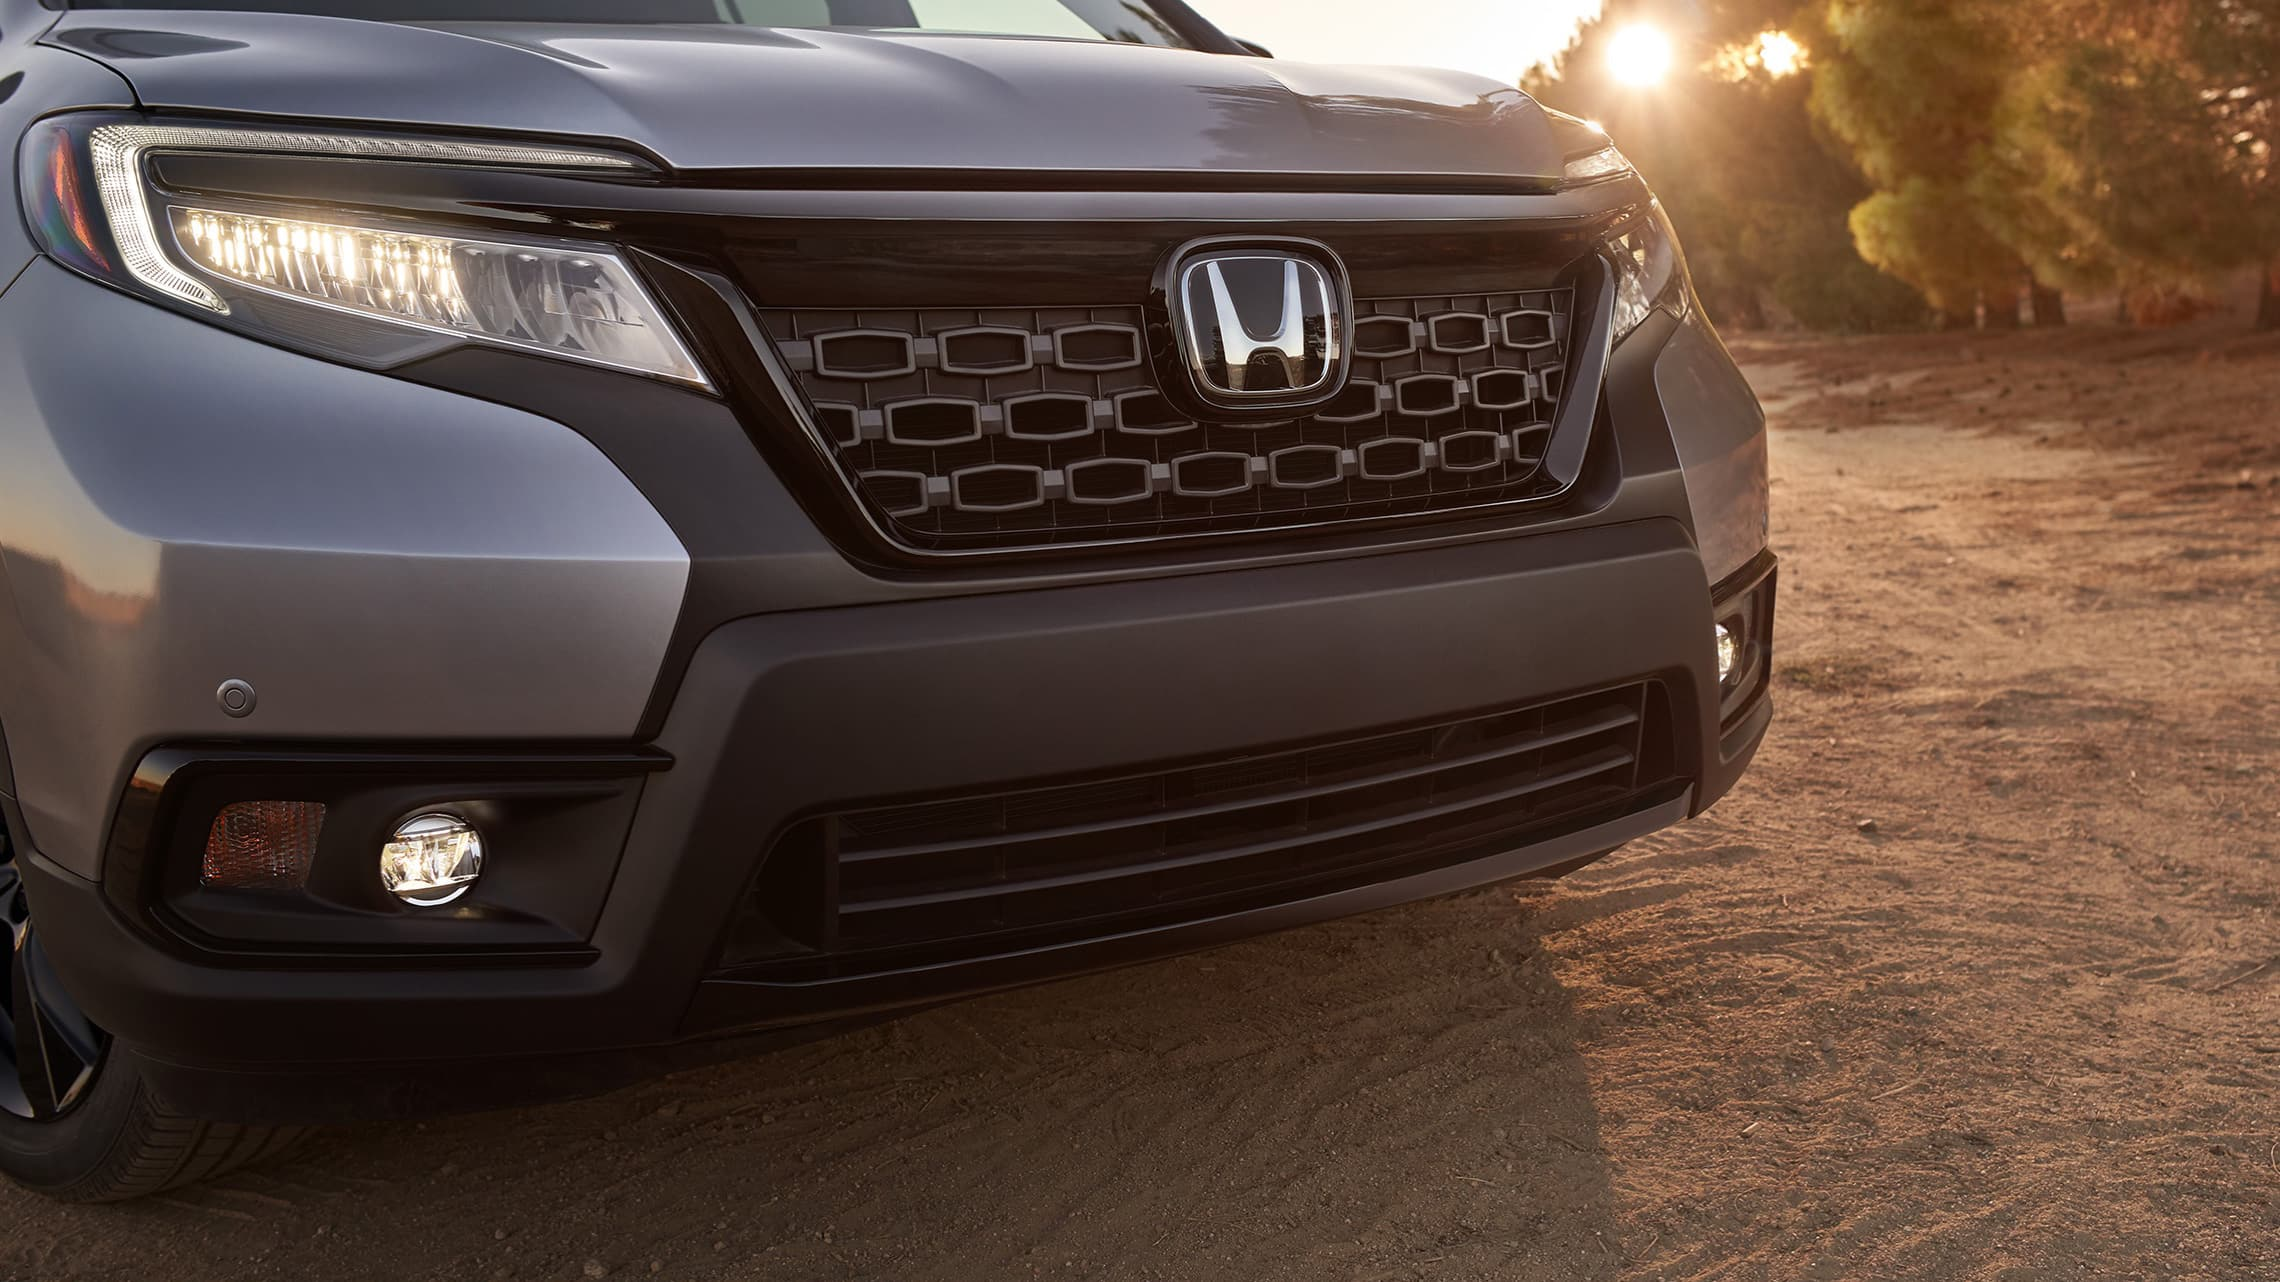 Grille detail on the 2020 Honda Passport Elite in Lunar Silver Metallic.